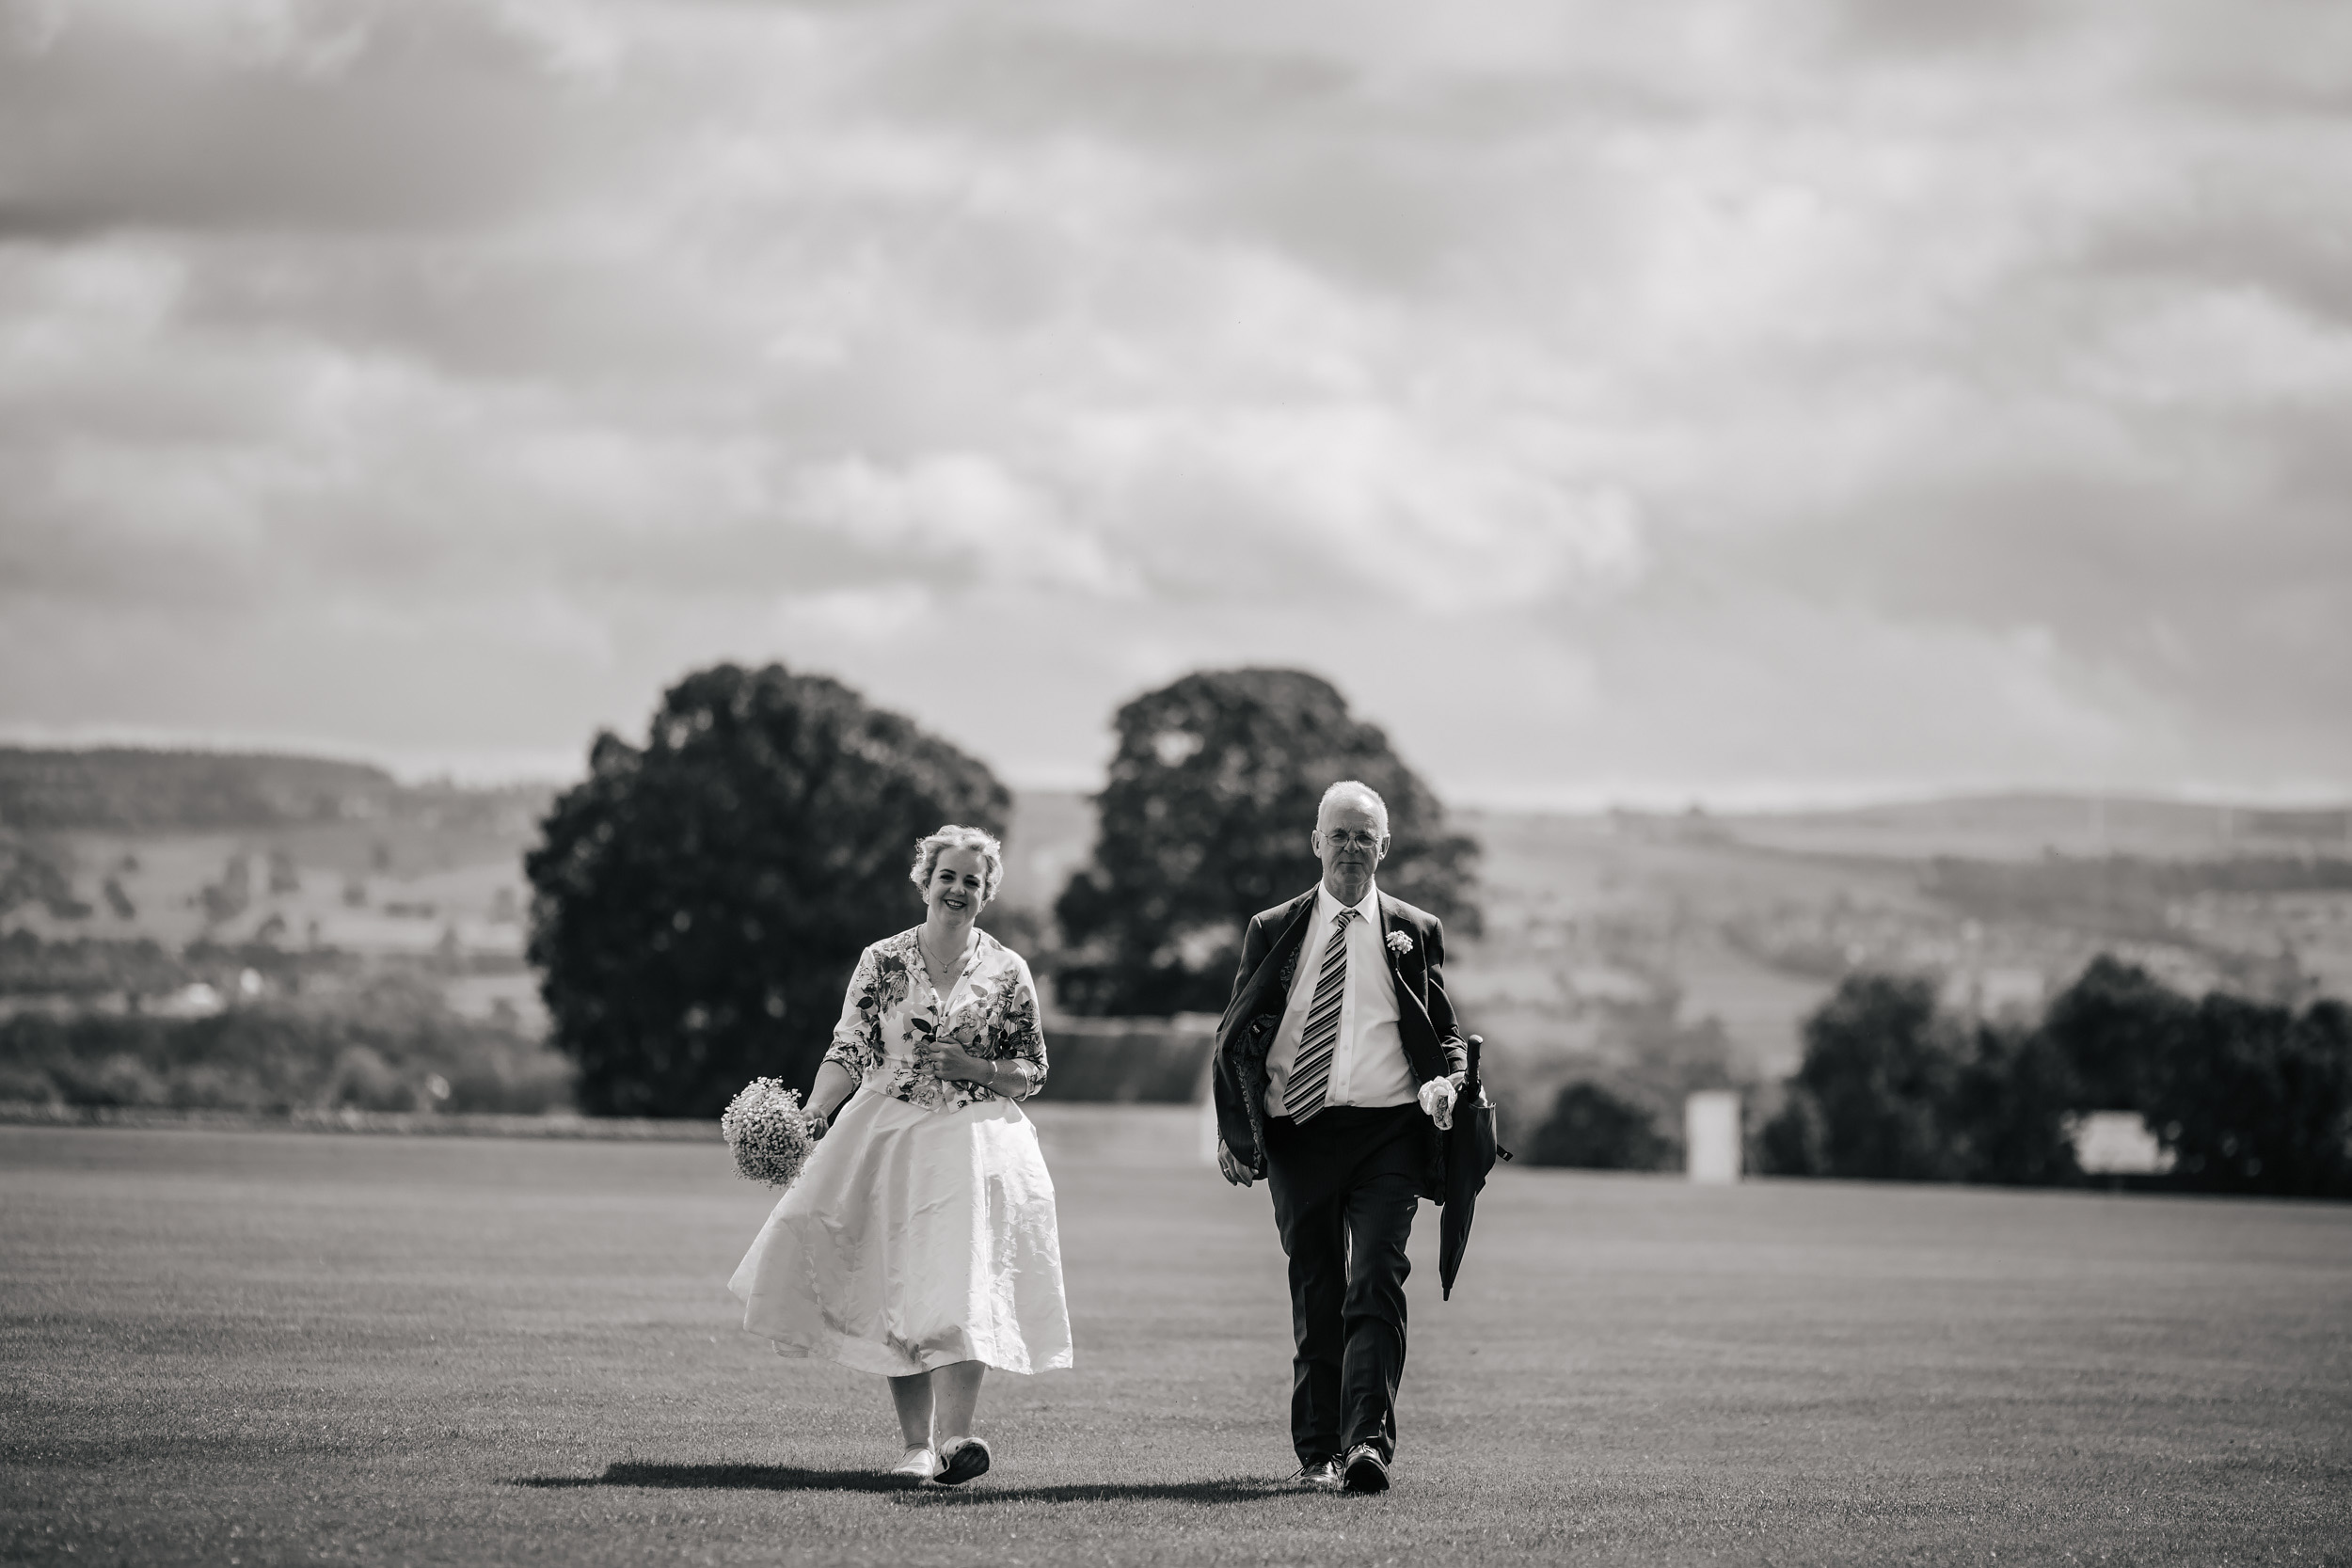 Bride and her father at a wedding in Lancashire